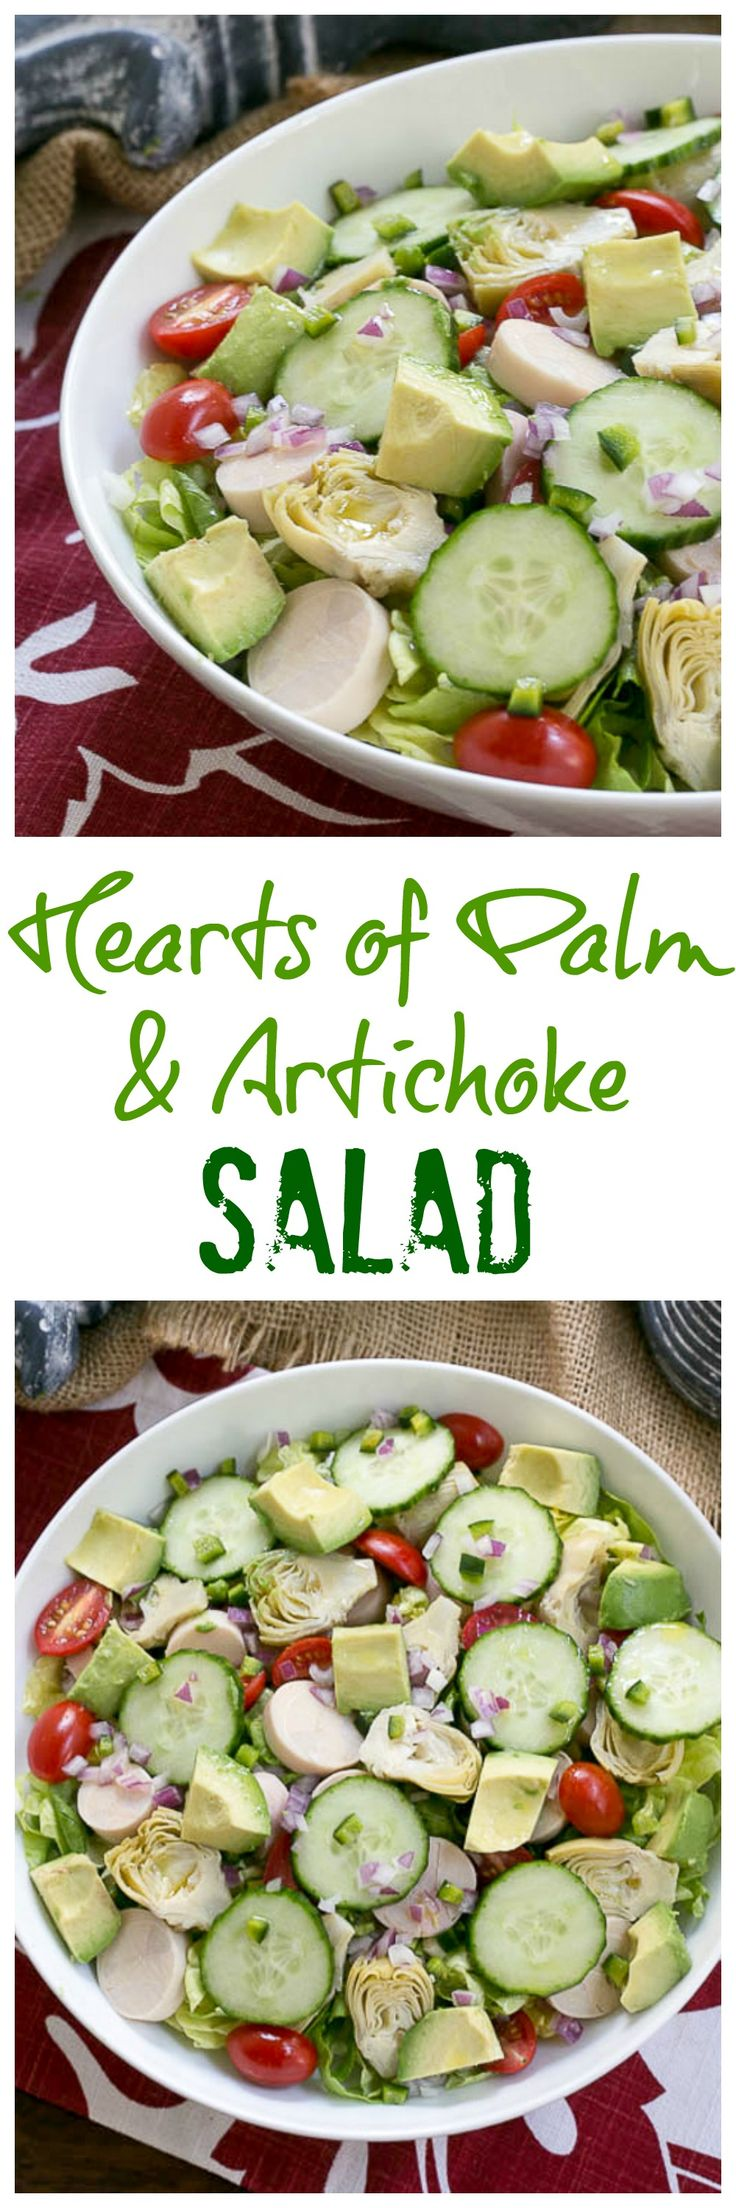 Hearts of Palm, Artichoke, Avocado and Butter Lettuce Salad @lizzydo